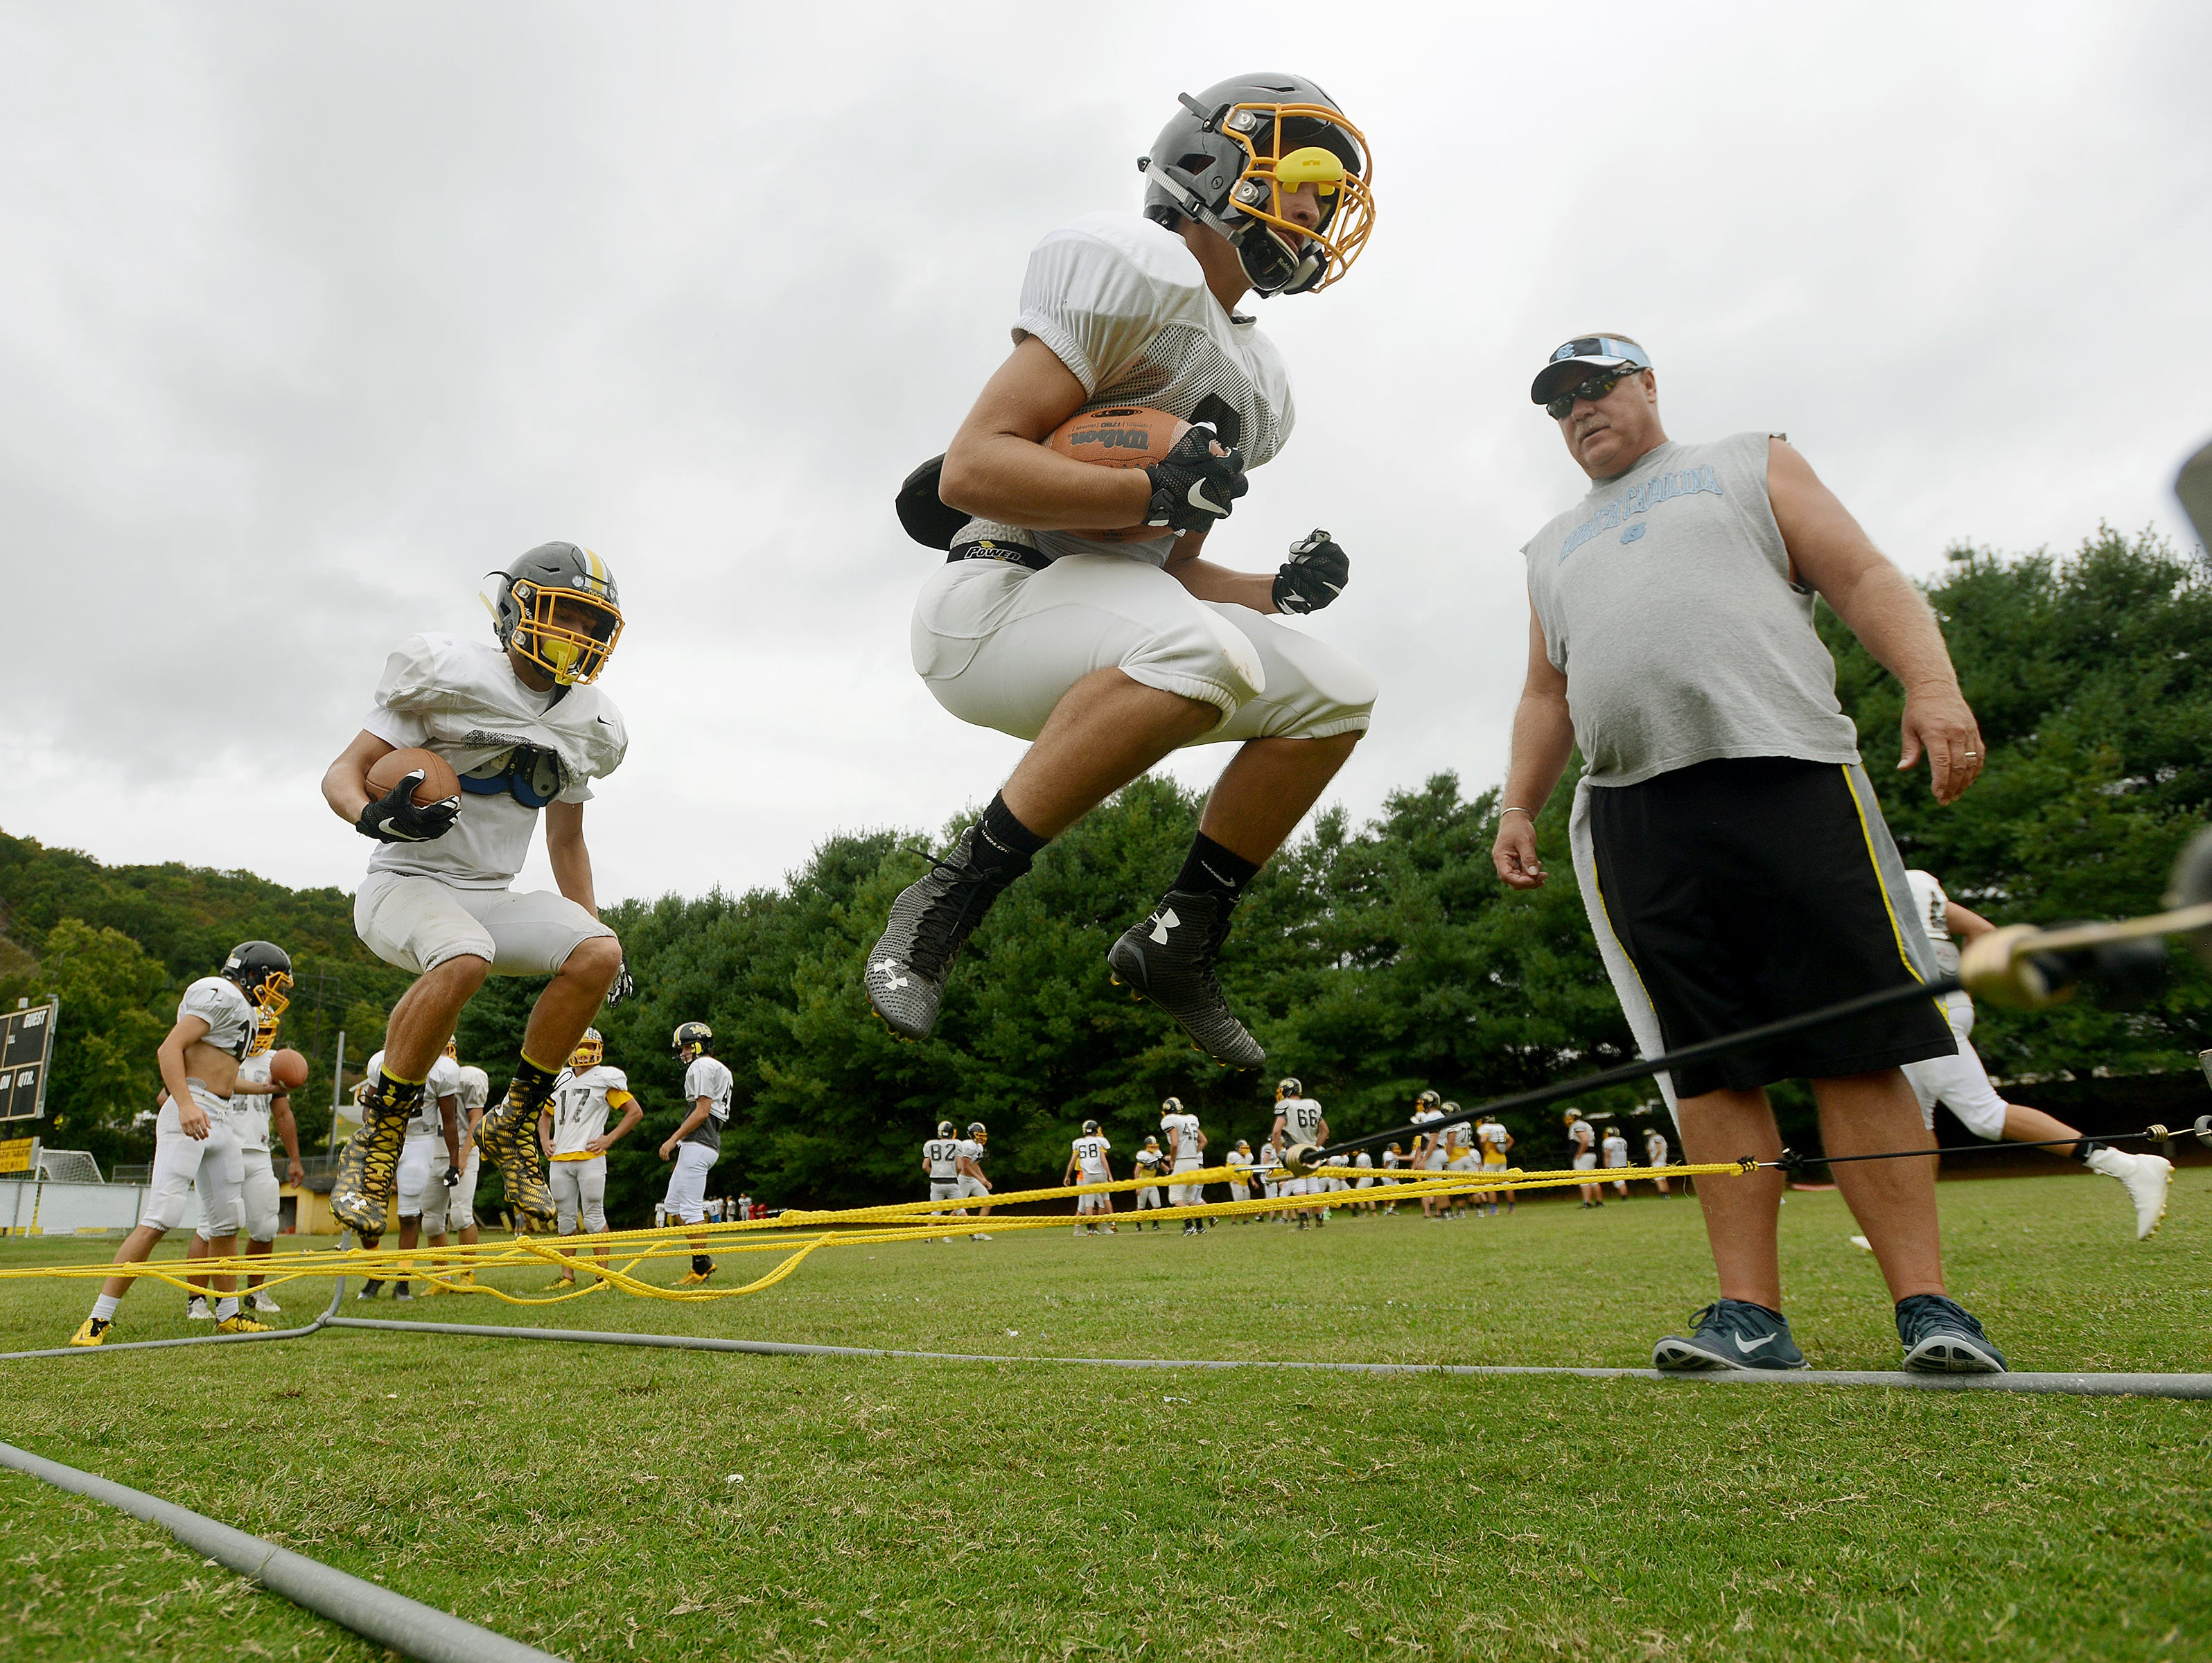 Murphy football players take part in a recent practice.